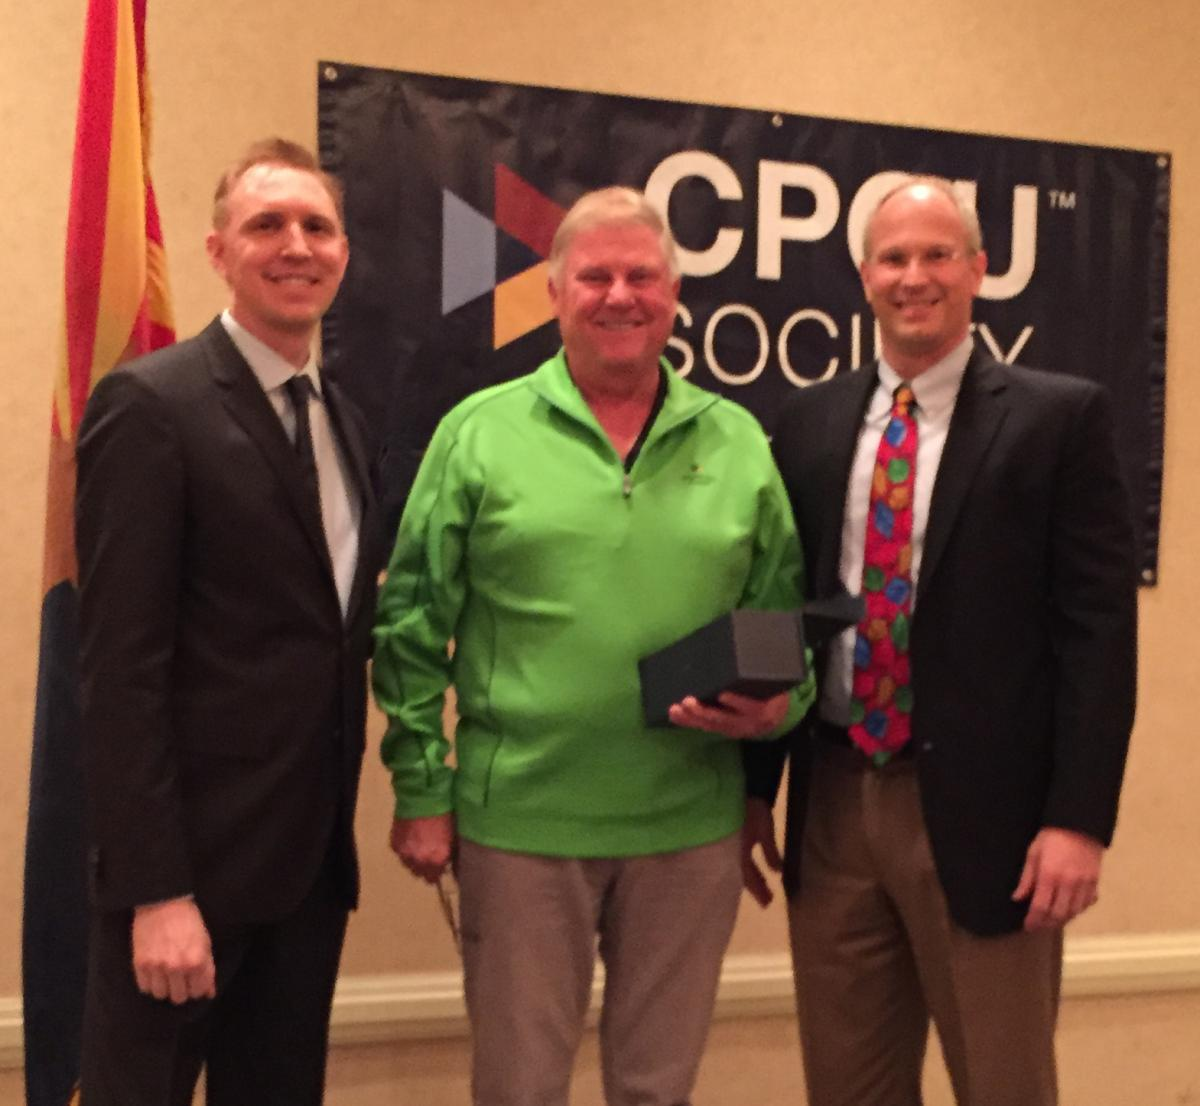 Rick Lambert: Arizona CPCU Society Chapter